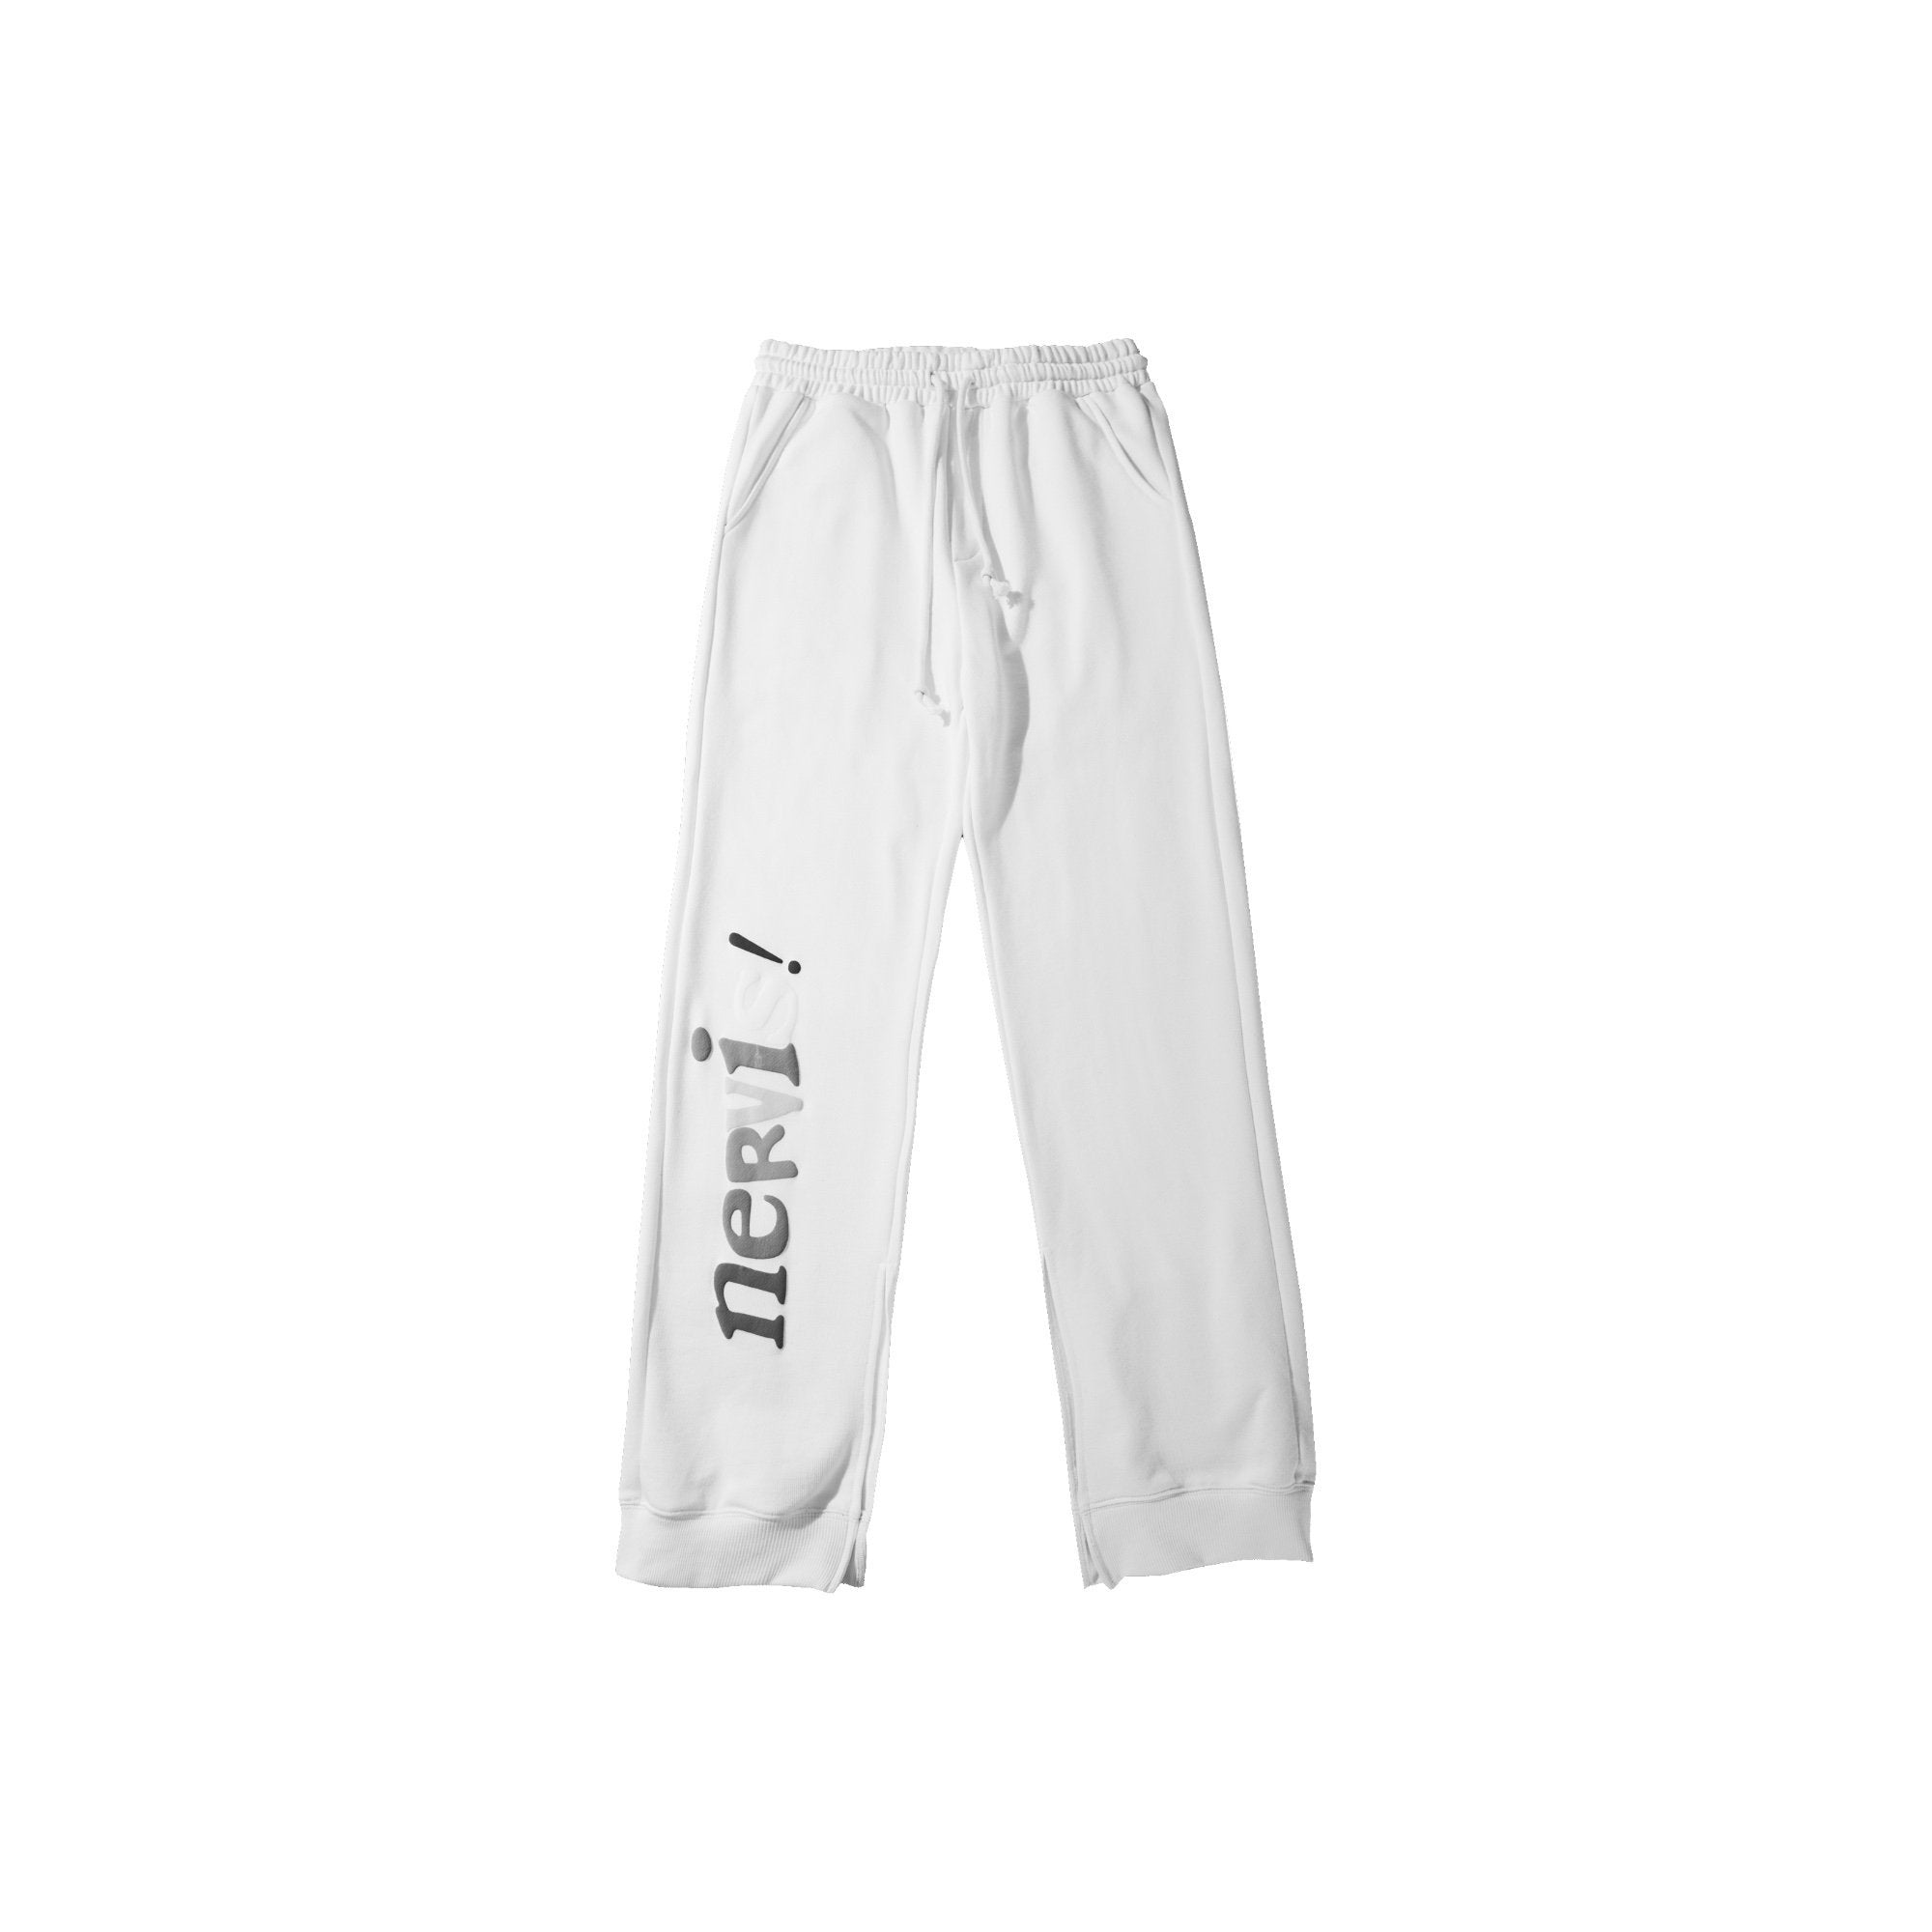 MAYHEM Nervis White Puff-print Lounge Pants | MADA IN CHINA